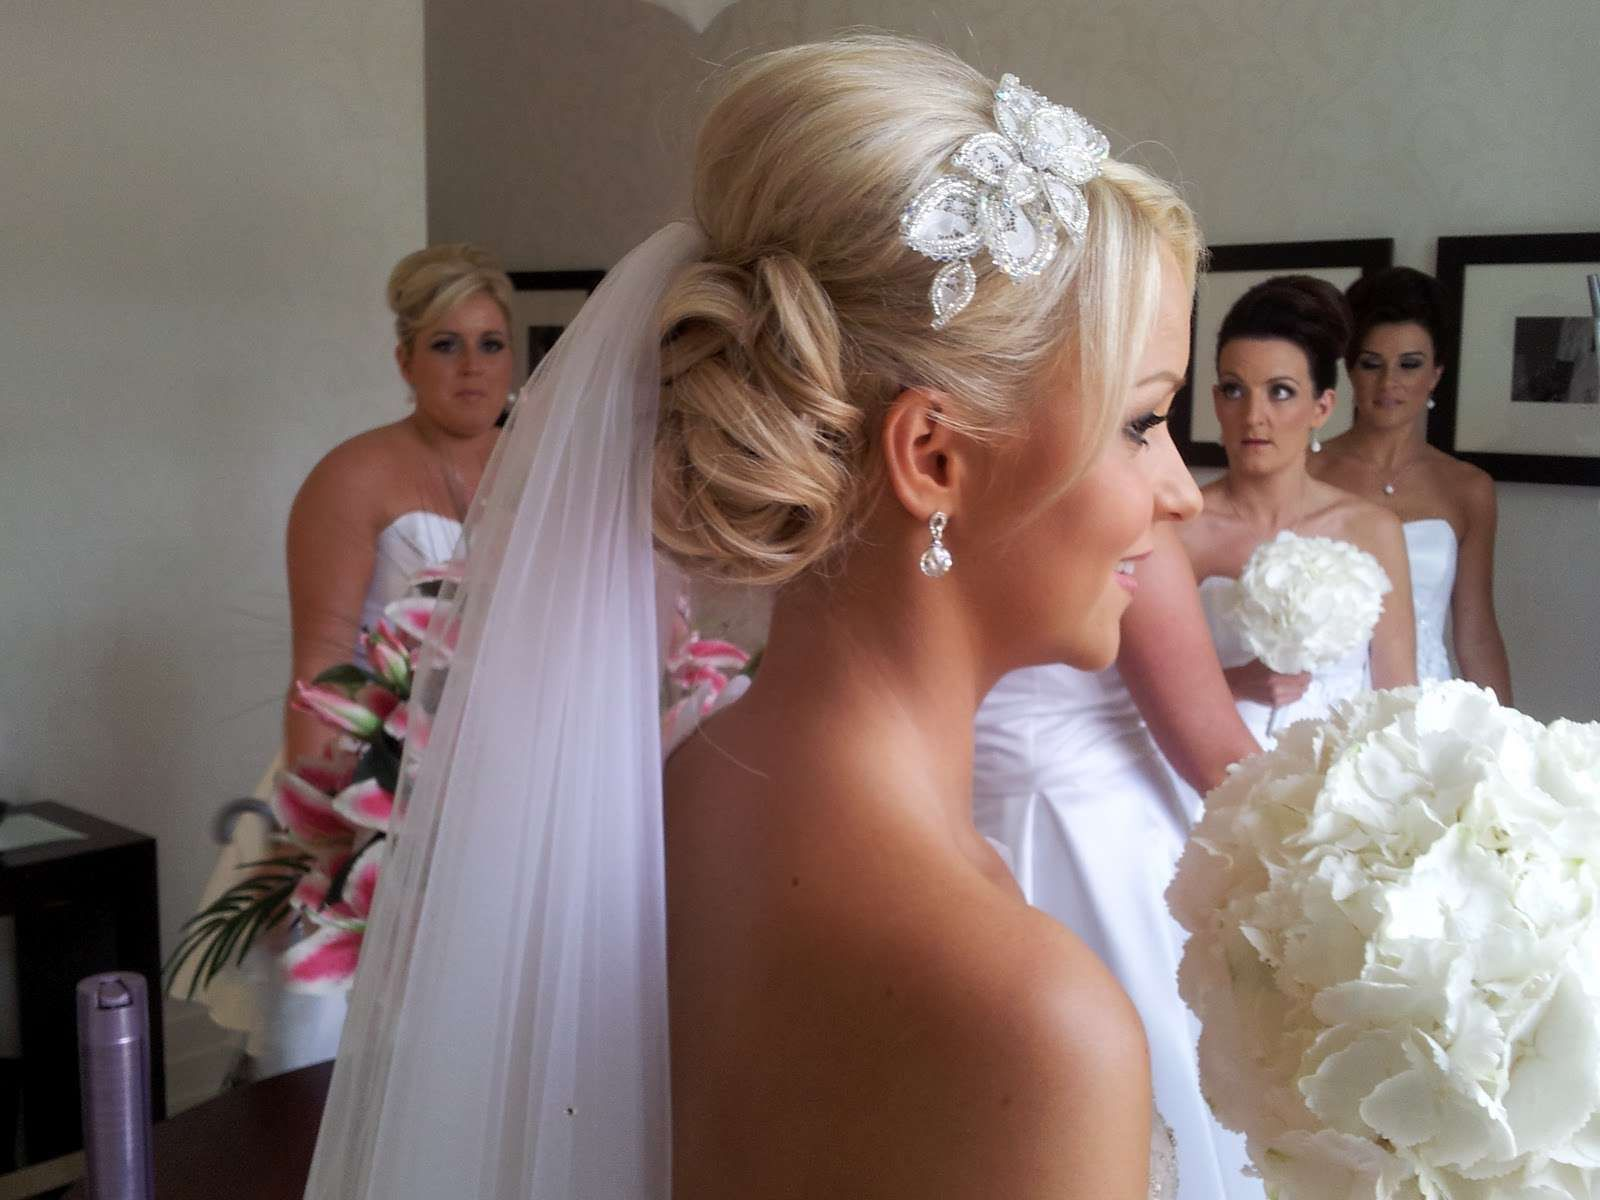 hair style with a veil |  hairstyles 2014 blonde wedding